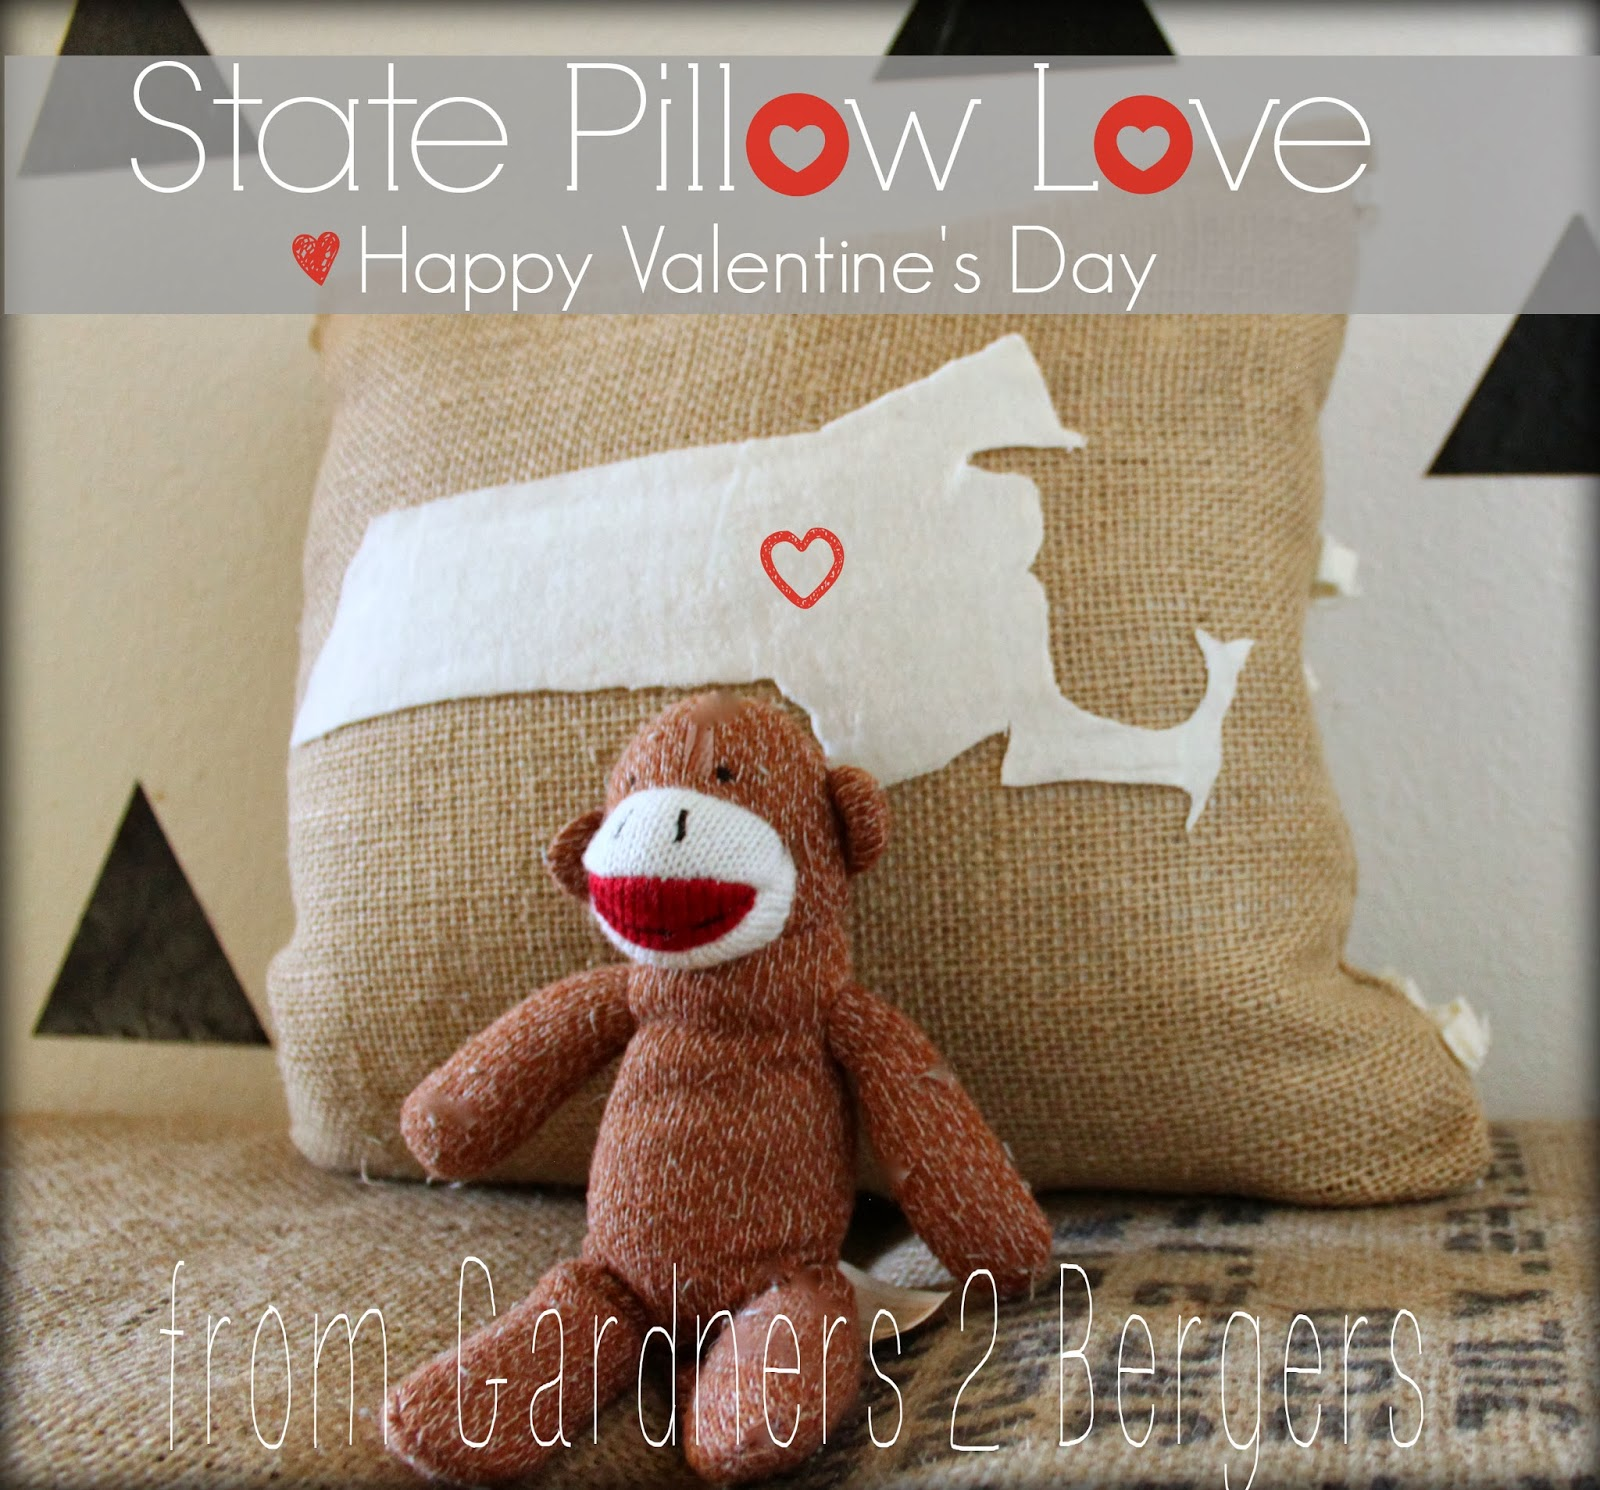 State-Love-Pillow-Happy-Valentine's-Day